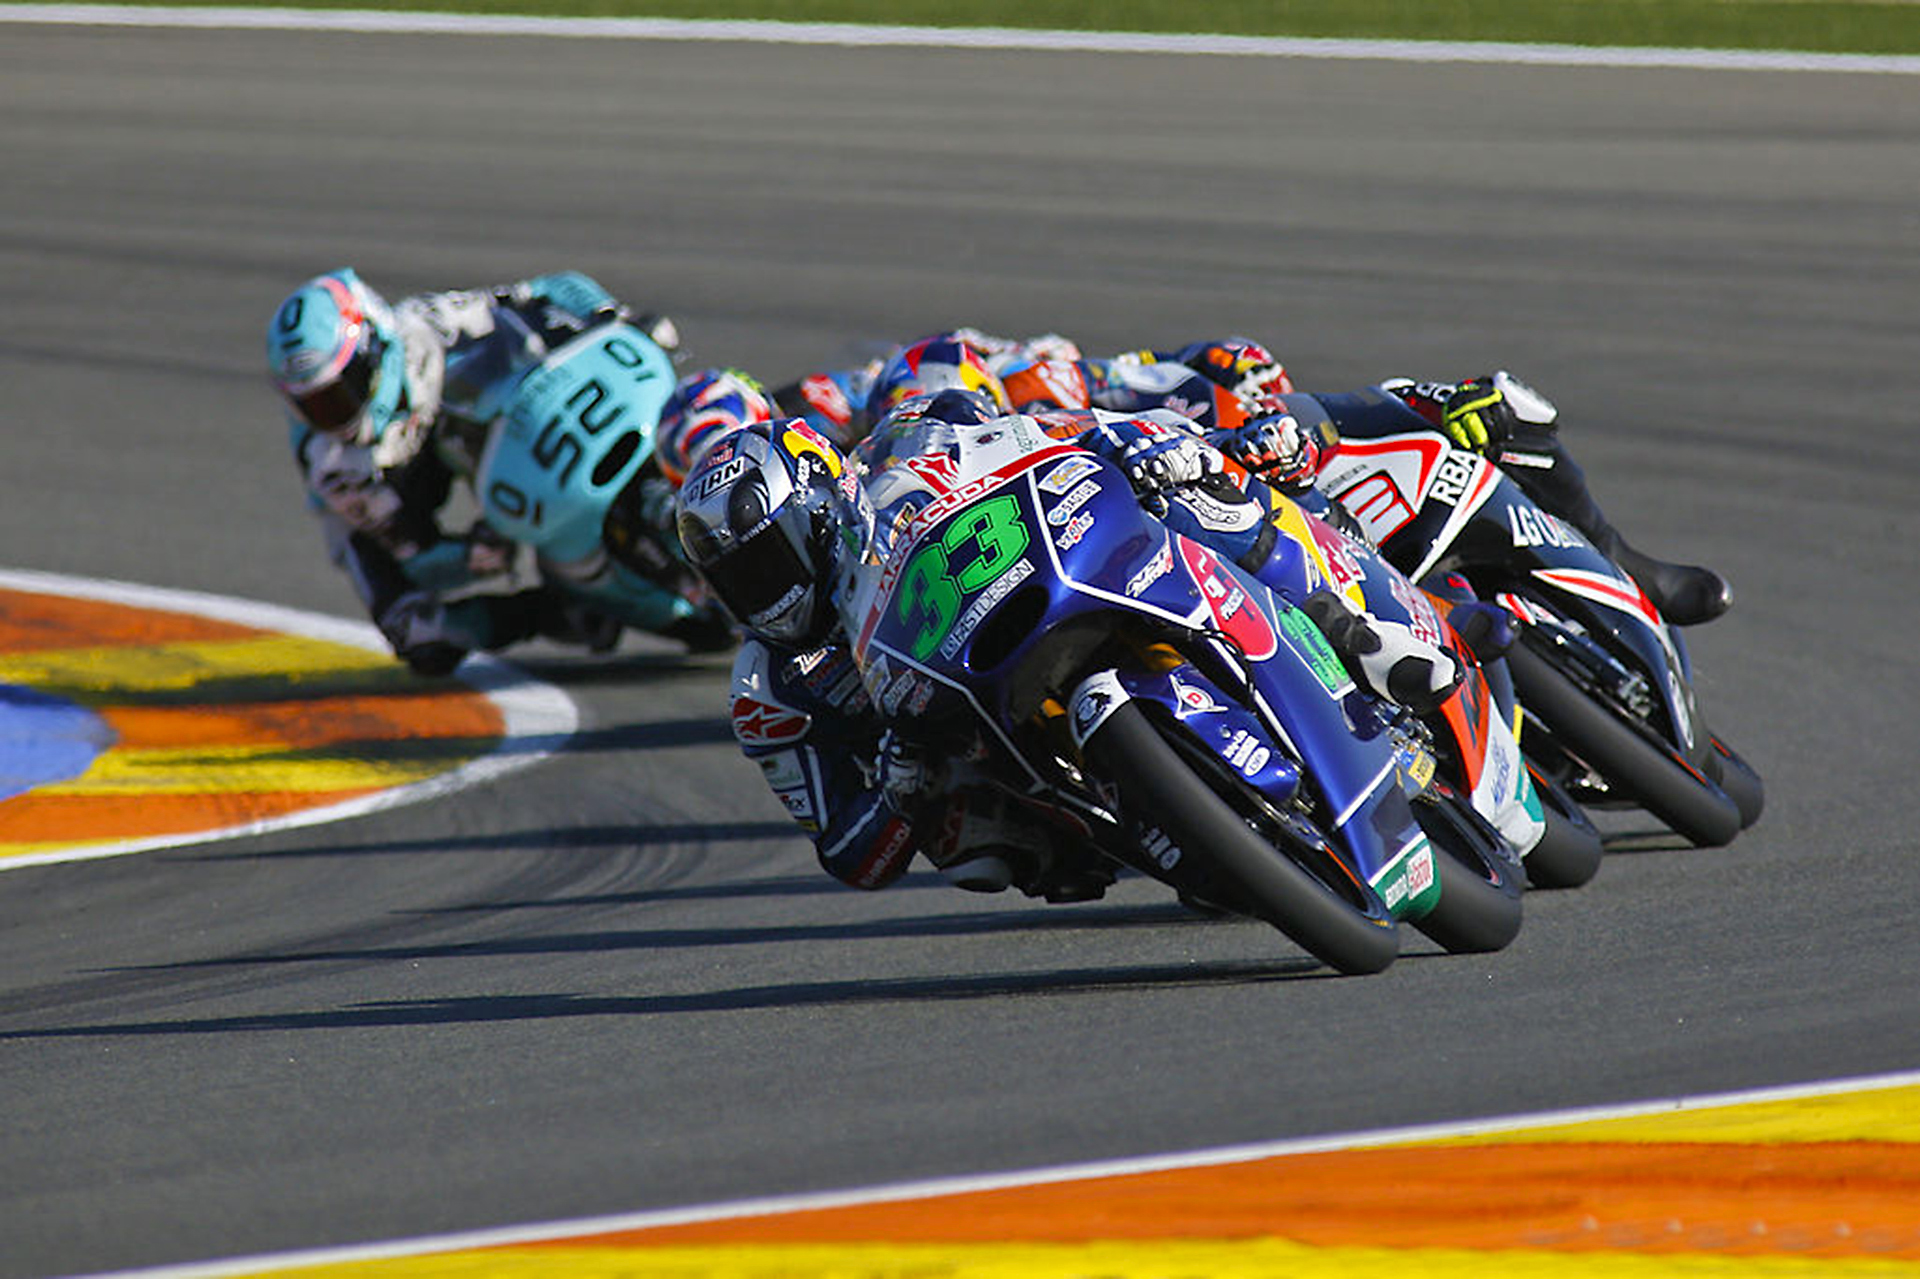 Enea Bartianini leading the pack.Enea Bartianini leading the pack. Moto3 World Championship